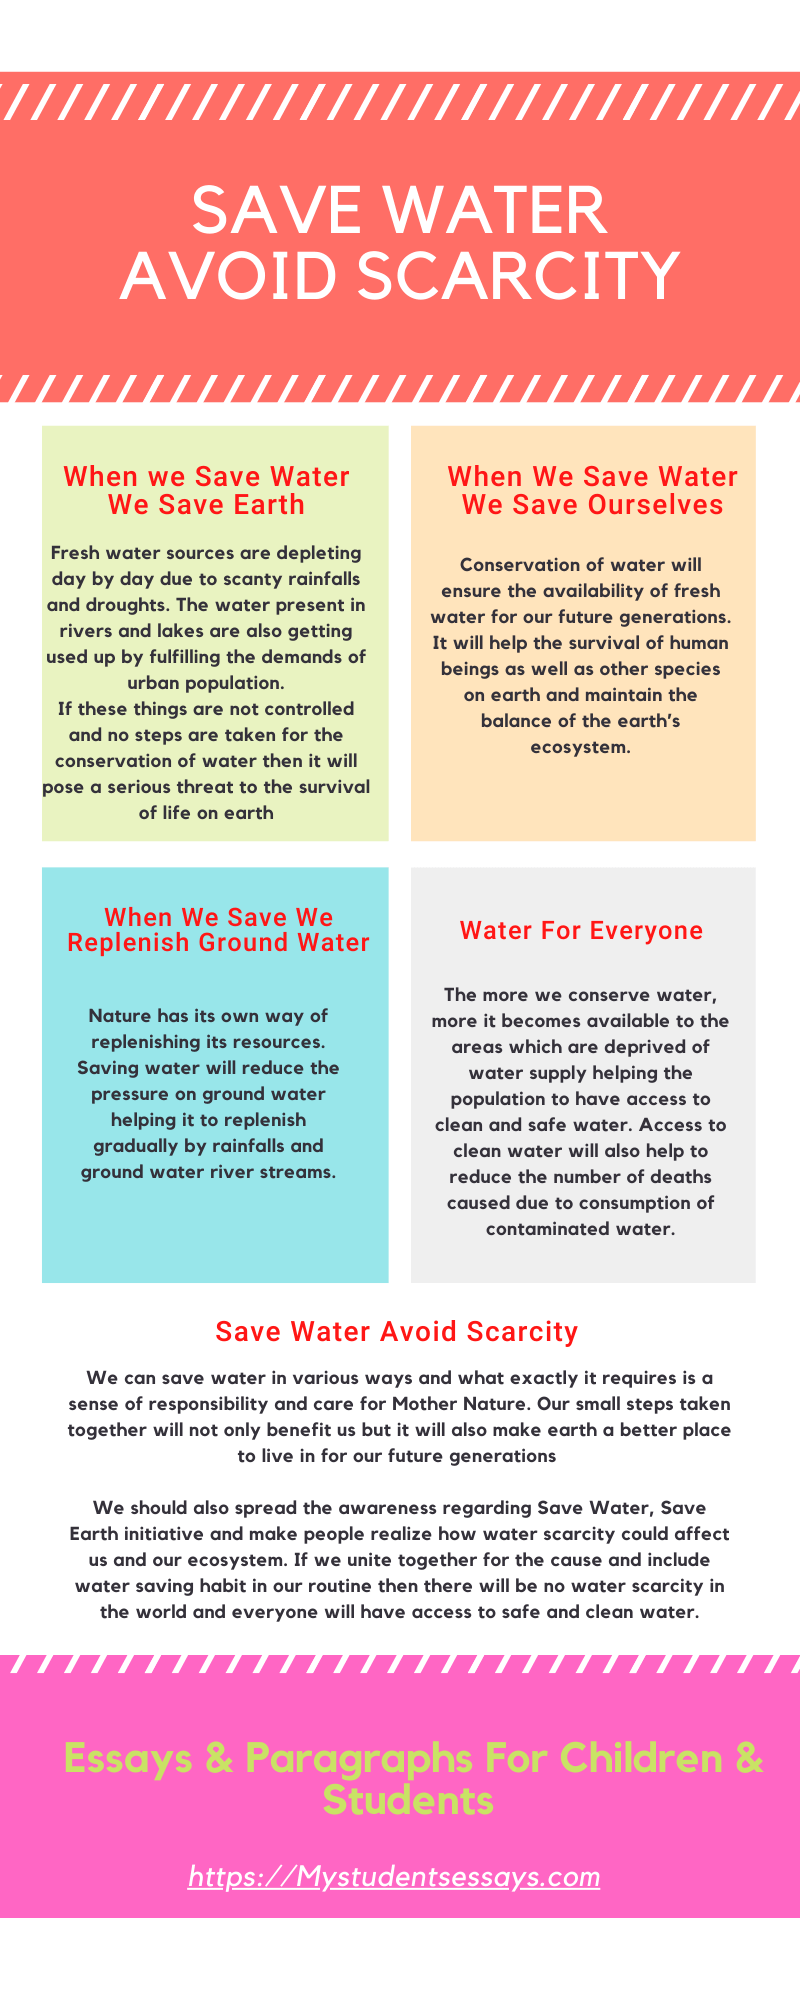 Essay on Water Scarcity, water crisis essay for students